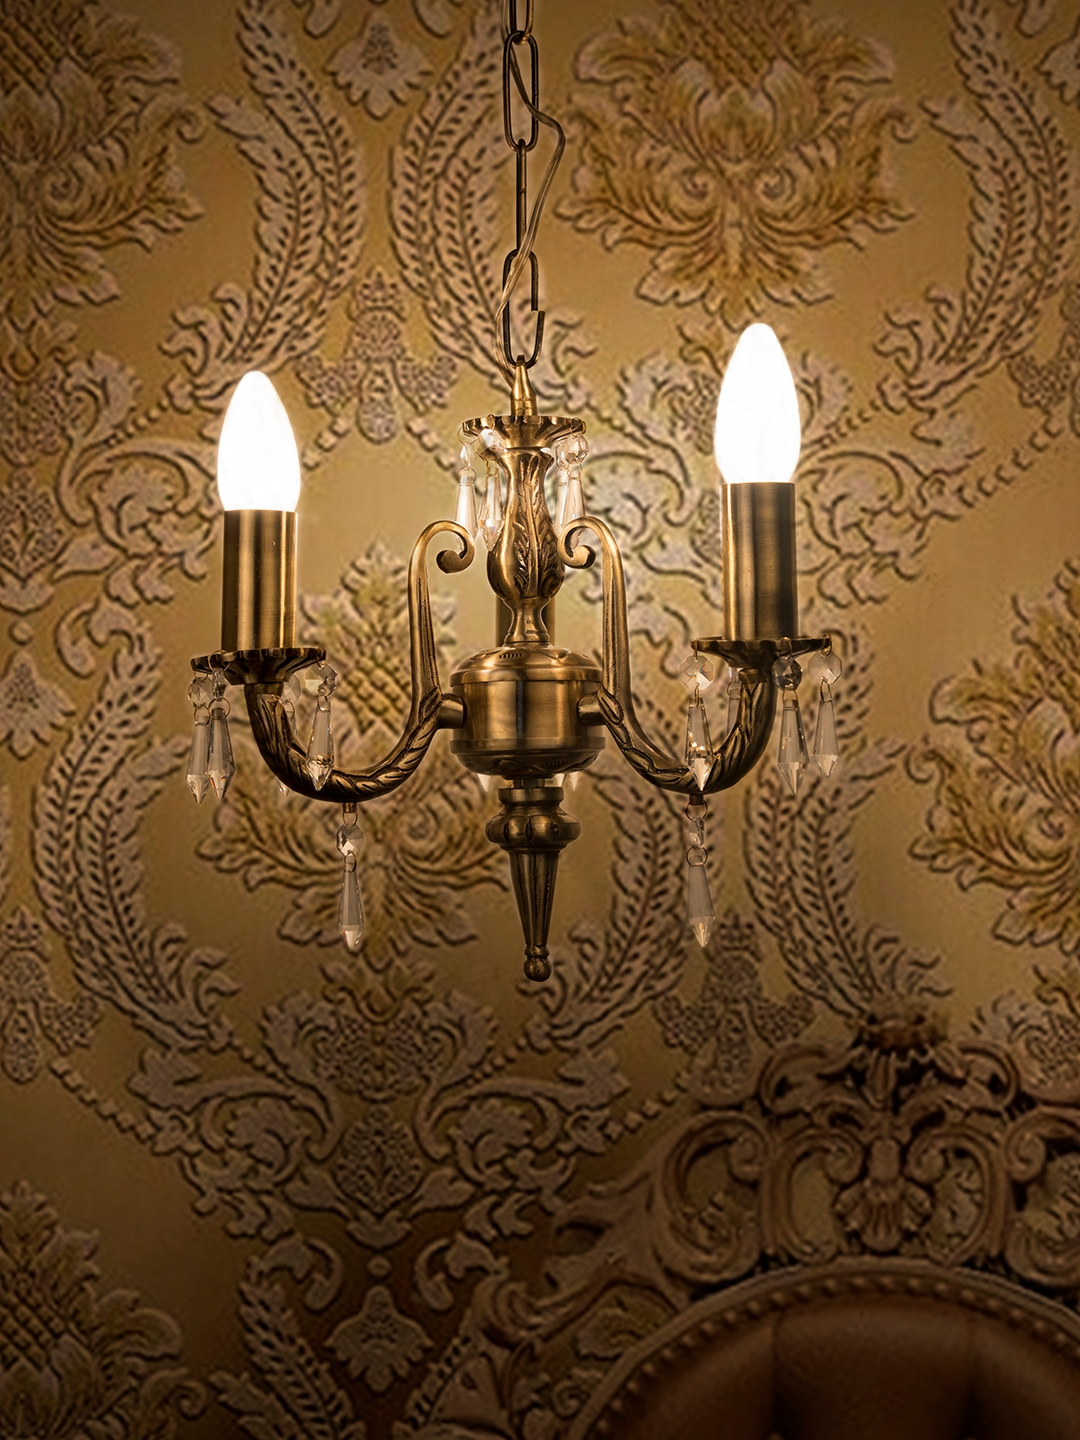 Fos Lighting Antique Gold Toned Cylindrical Ceiling Lamp